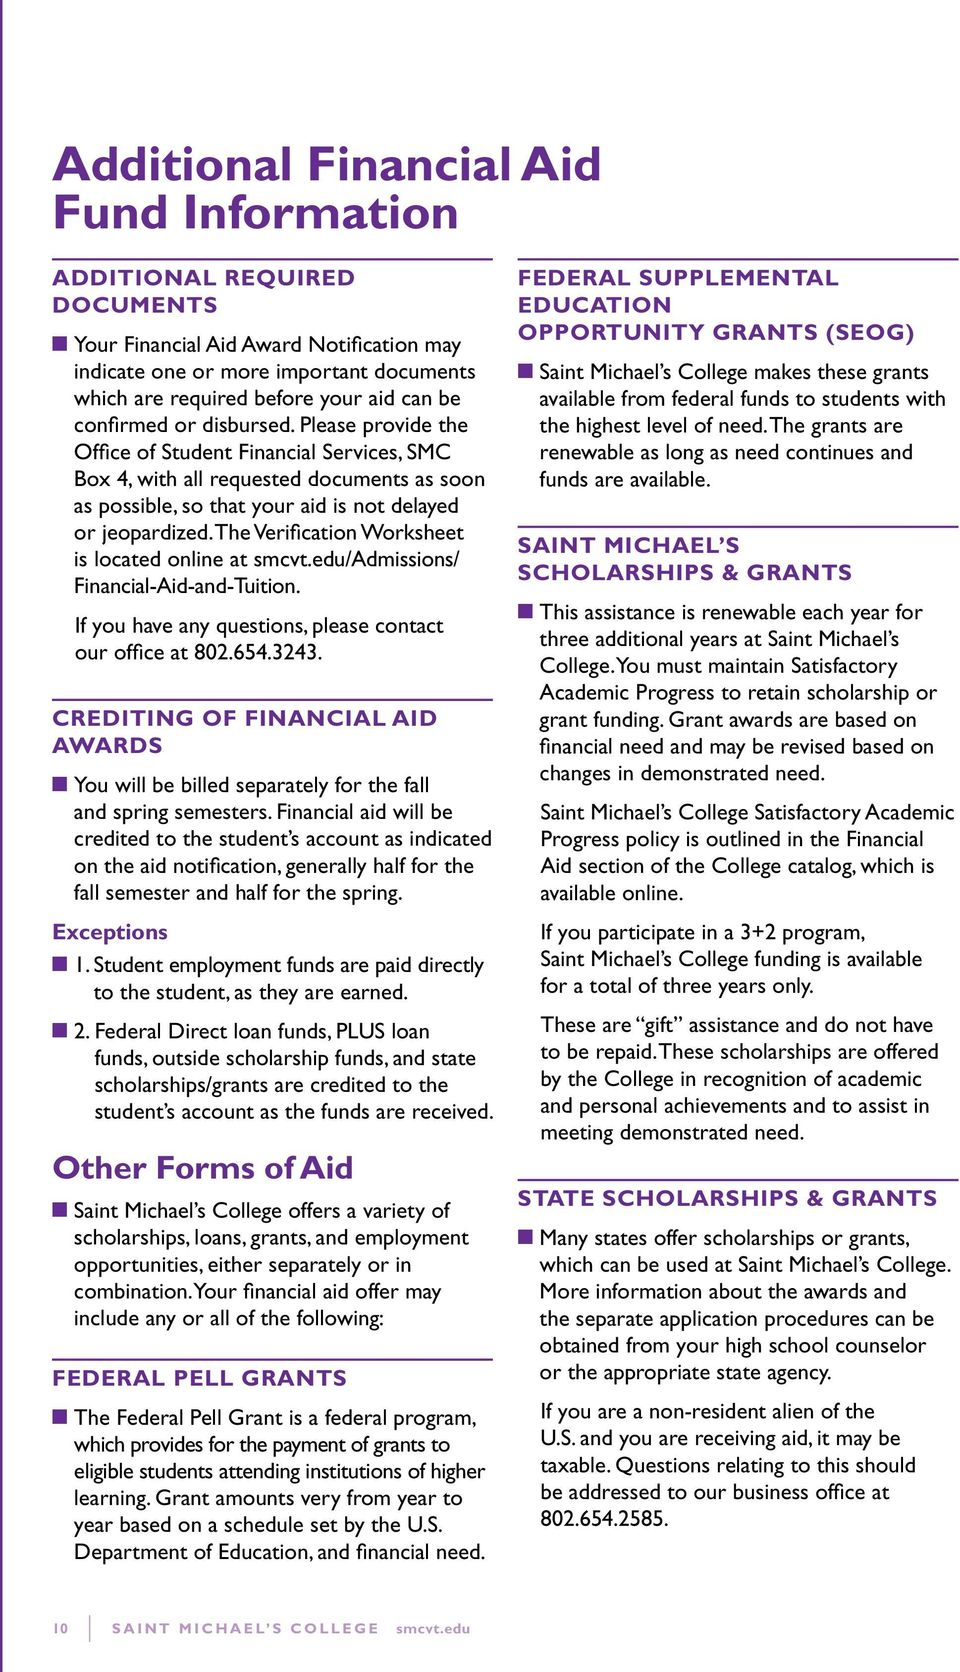 The Verification Worksheet is located online at smcvt.edu/admissions/ Financial-Aid-and-Tuition. If you have any questions, please contact our office at 802.654.3243.